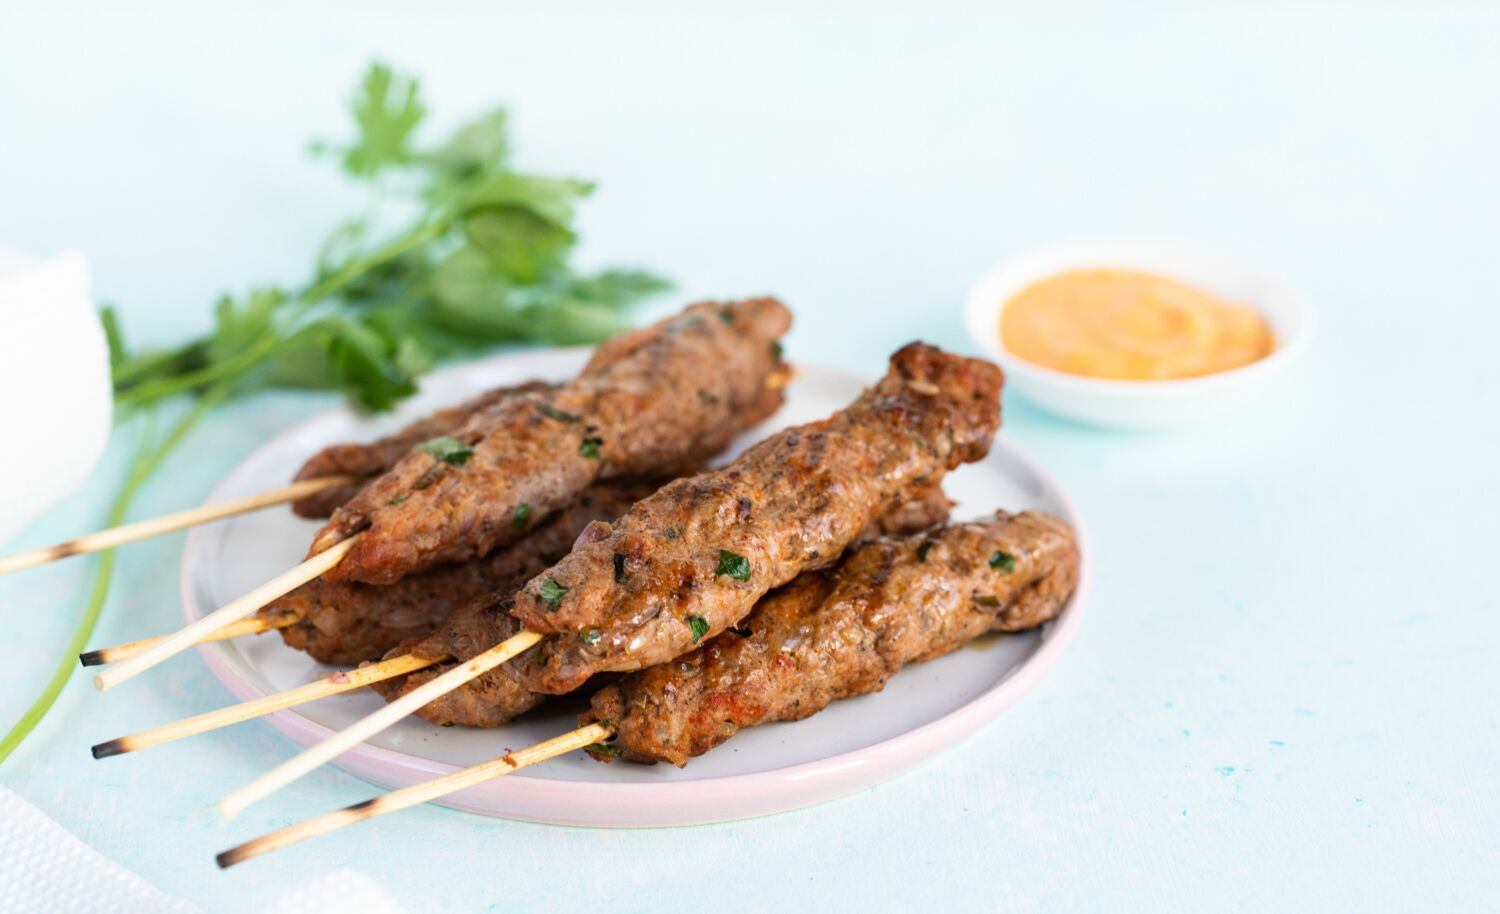 Moroccan Kefta Kebab Recipe With Ground Beef or Lamb